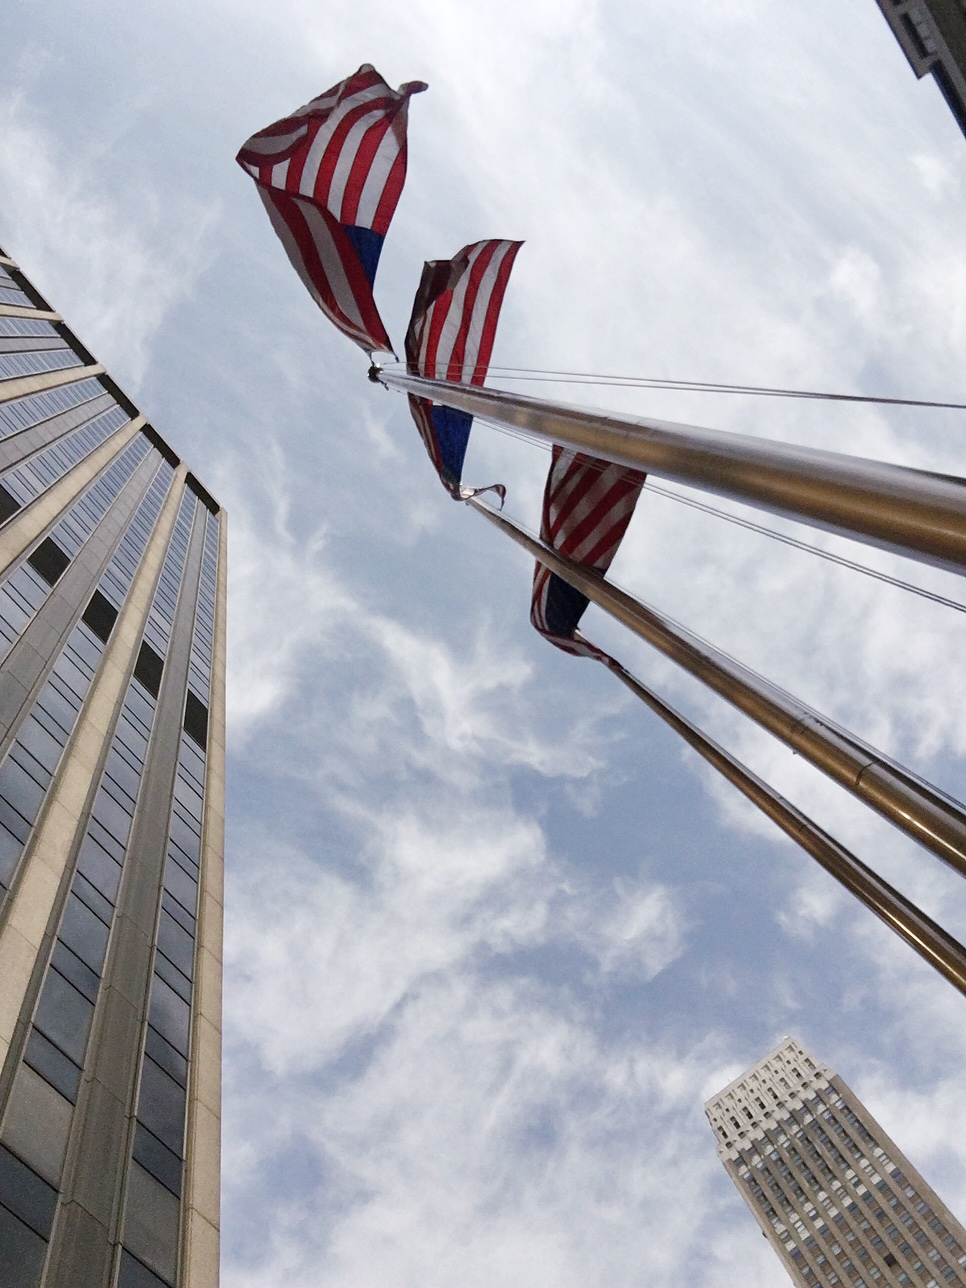 New York Fashion Week Diary : American Flags outside One Penn Plaza